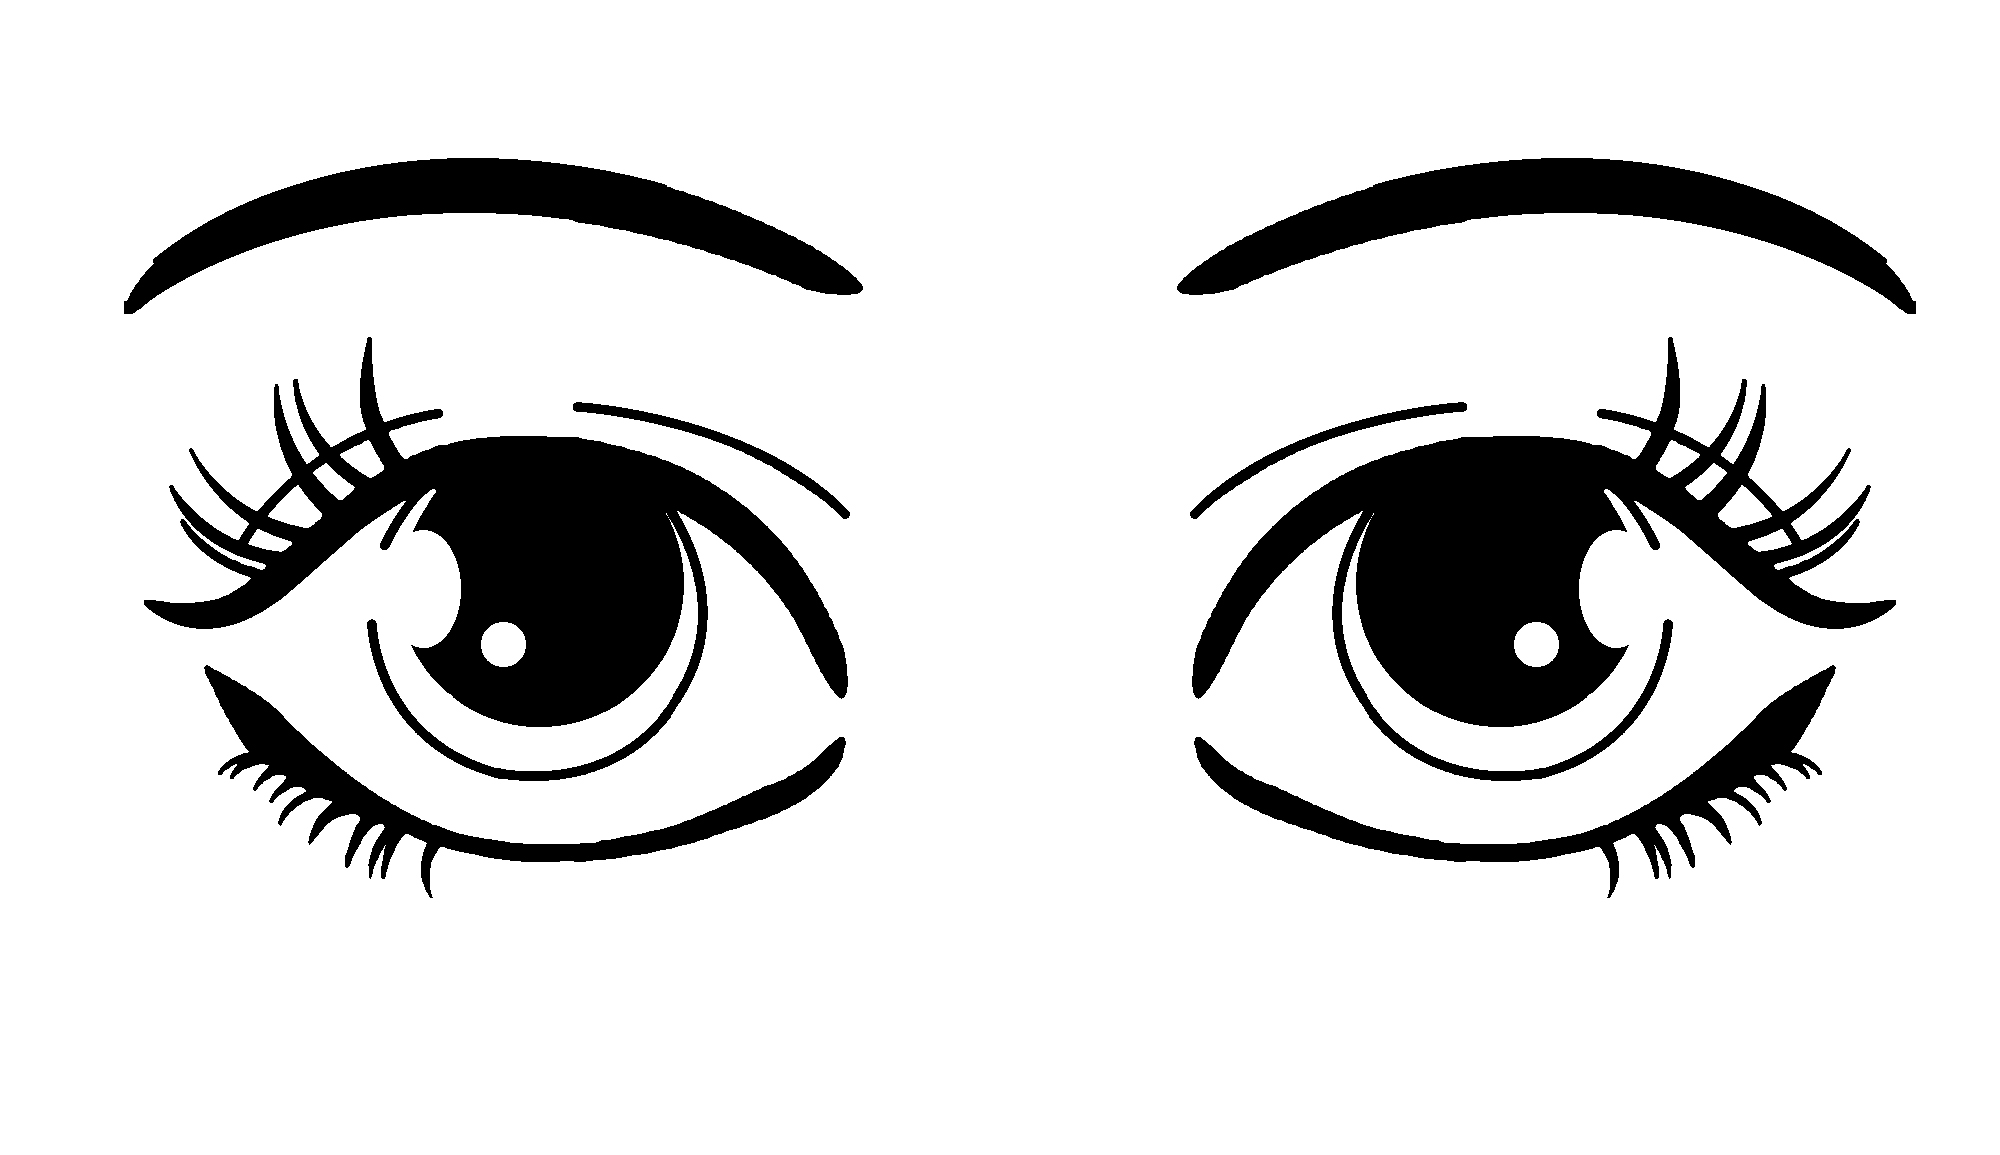 Wallpapers oke cartoon eyes clip art eyes clipart by | Wallpaper ...